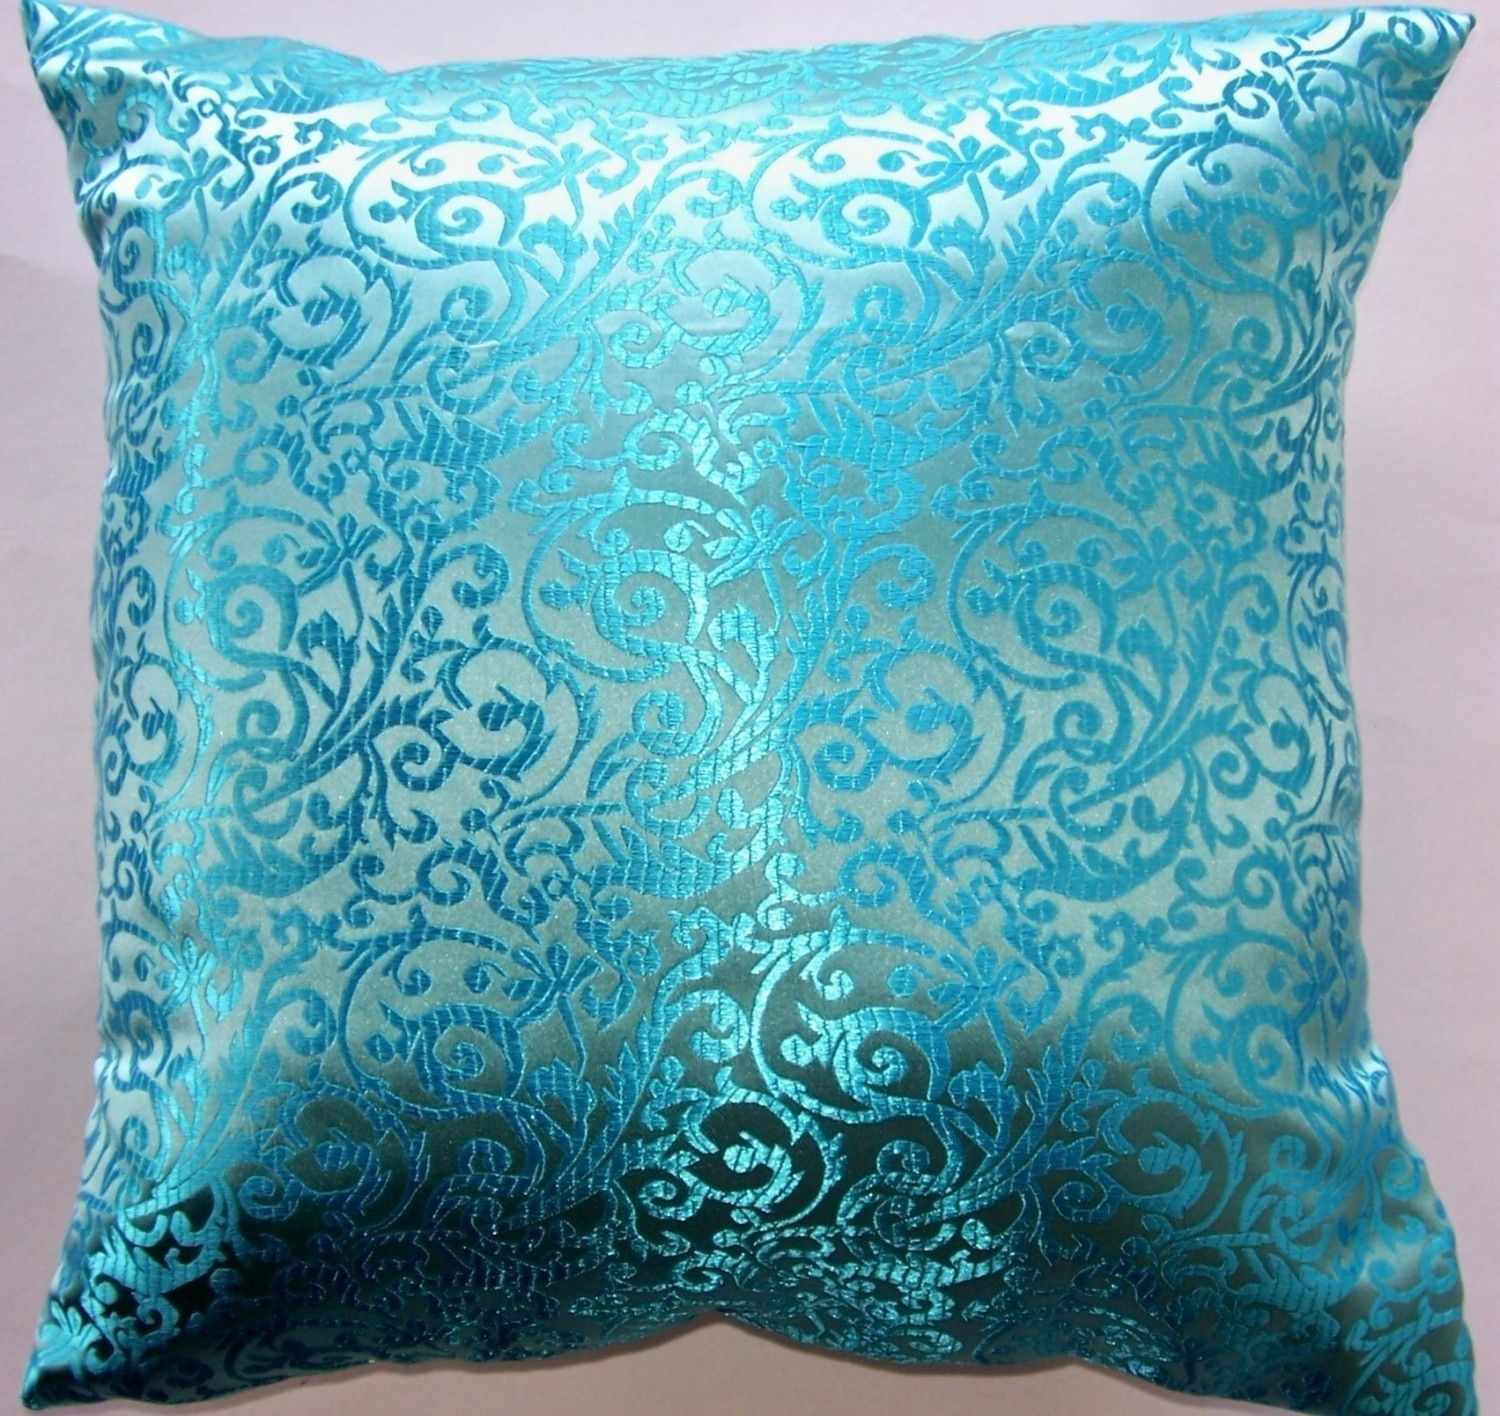 Turquoise Throw Pillow Cover Satin Brocade by sassypillows $19 99